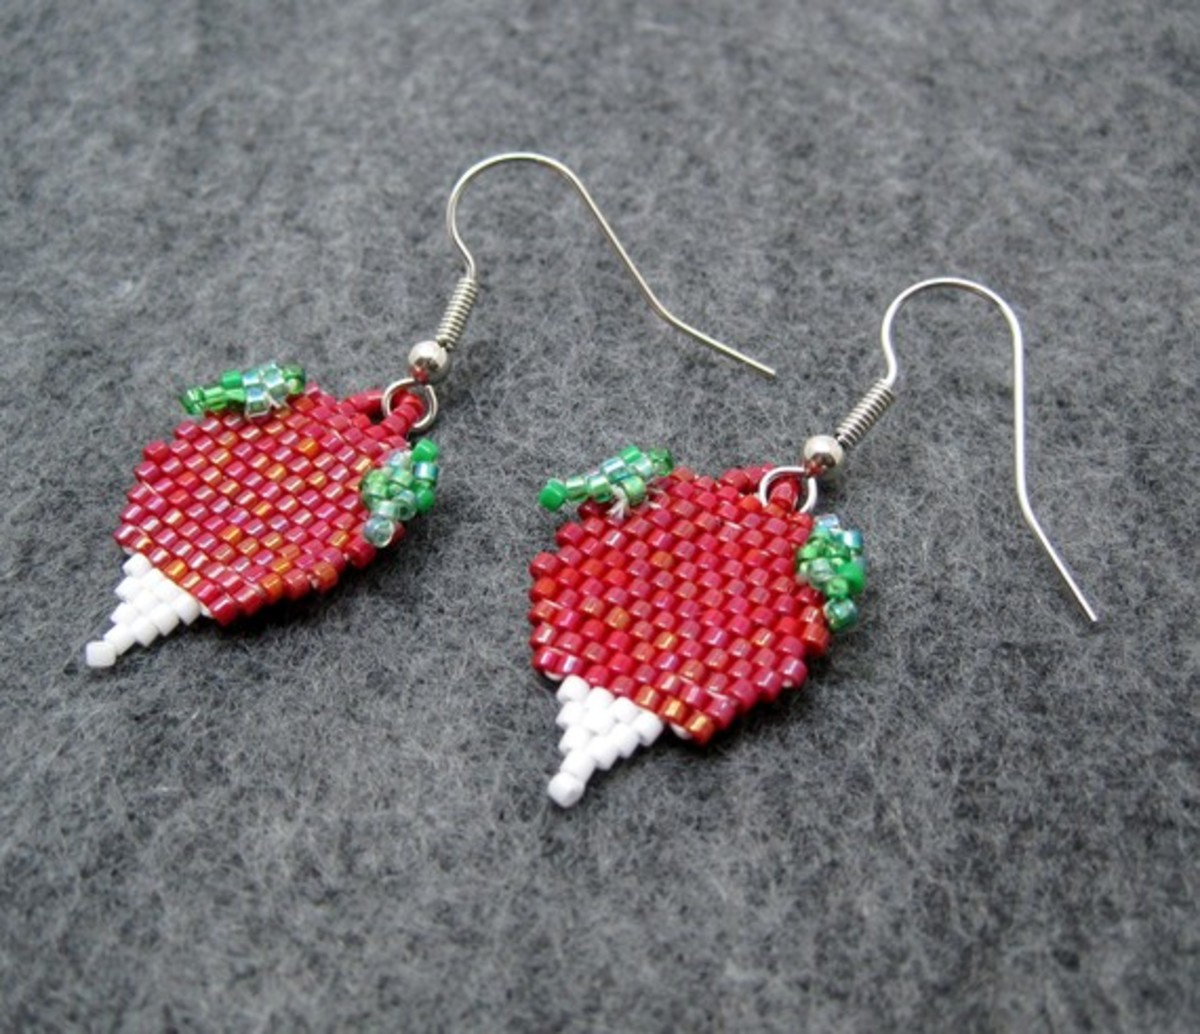 Beaded Dangle Earrings - Radishes: I created tiny leaves as part of a pair of custom radish earrings.  They are a beaded version of the radish earrings that Luna Lovegood wears in the Harry Potter movies.